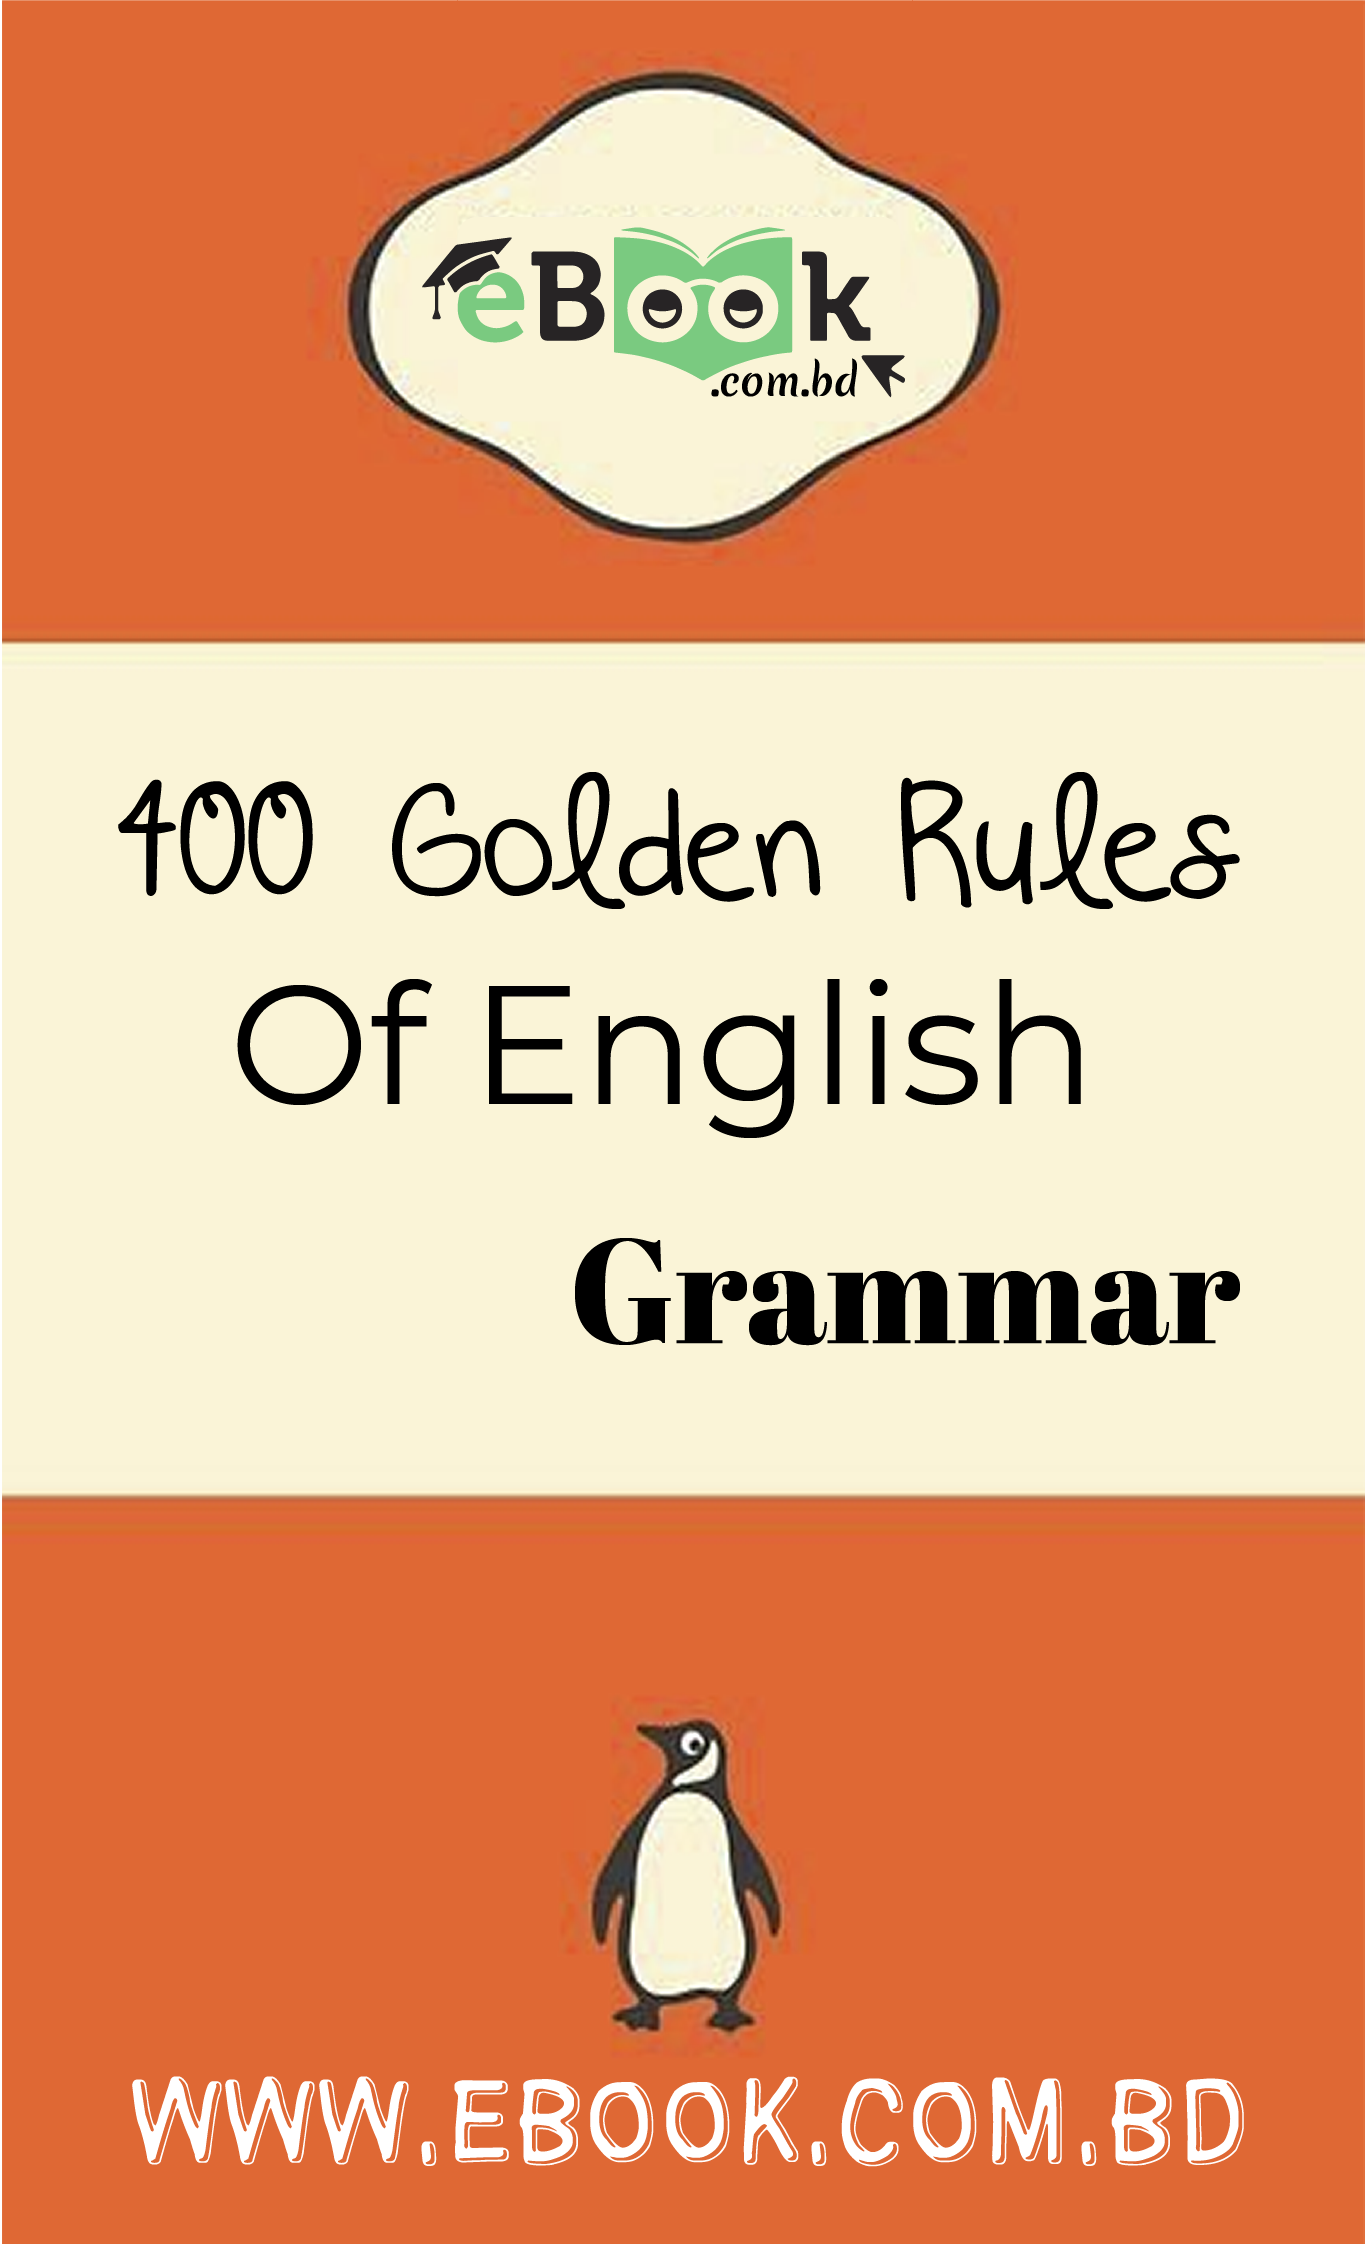 Thumbnail of 400 Golden Rules Of English Grammar